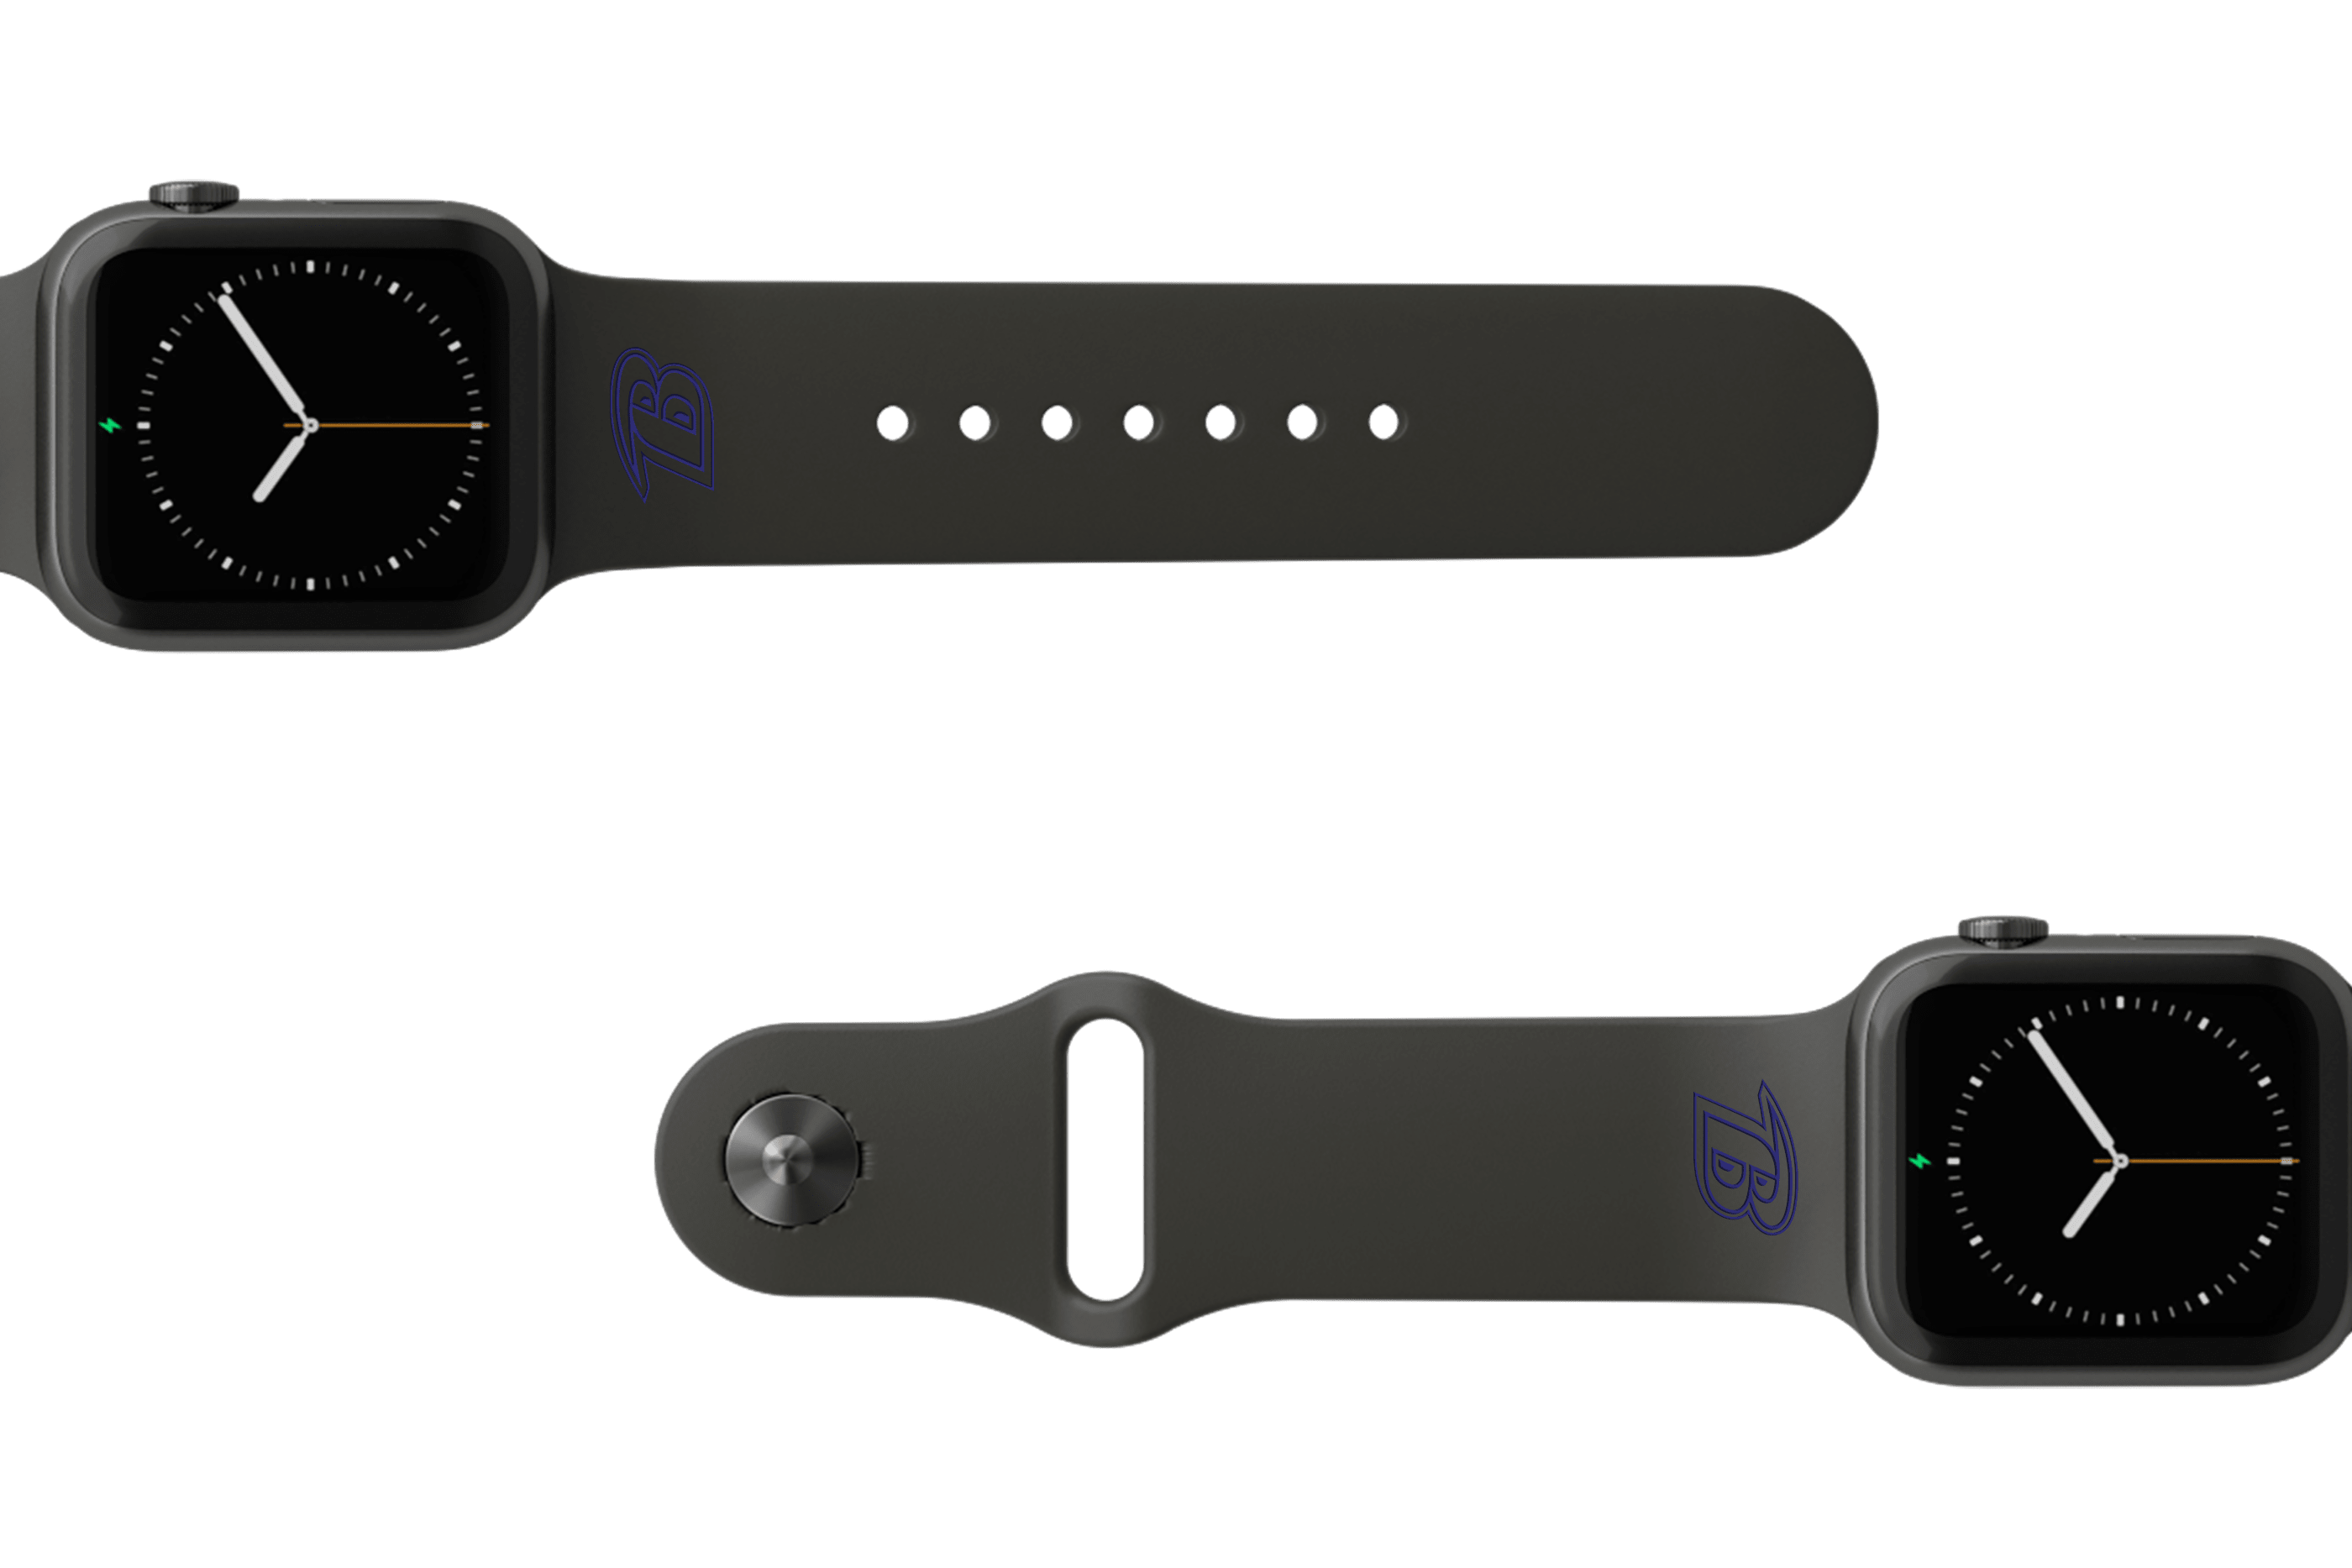 NFL Baltimore Ravens Black   apple watch band with gray hardware viewed from top down